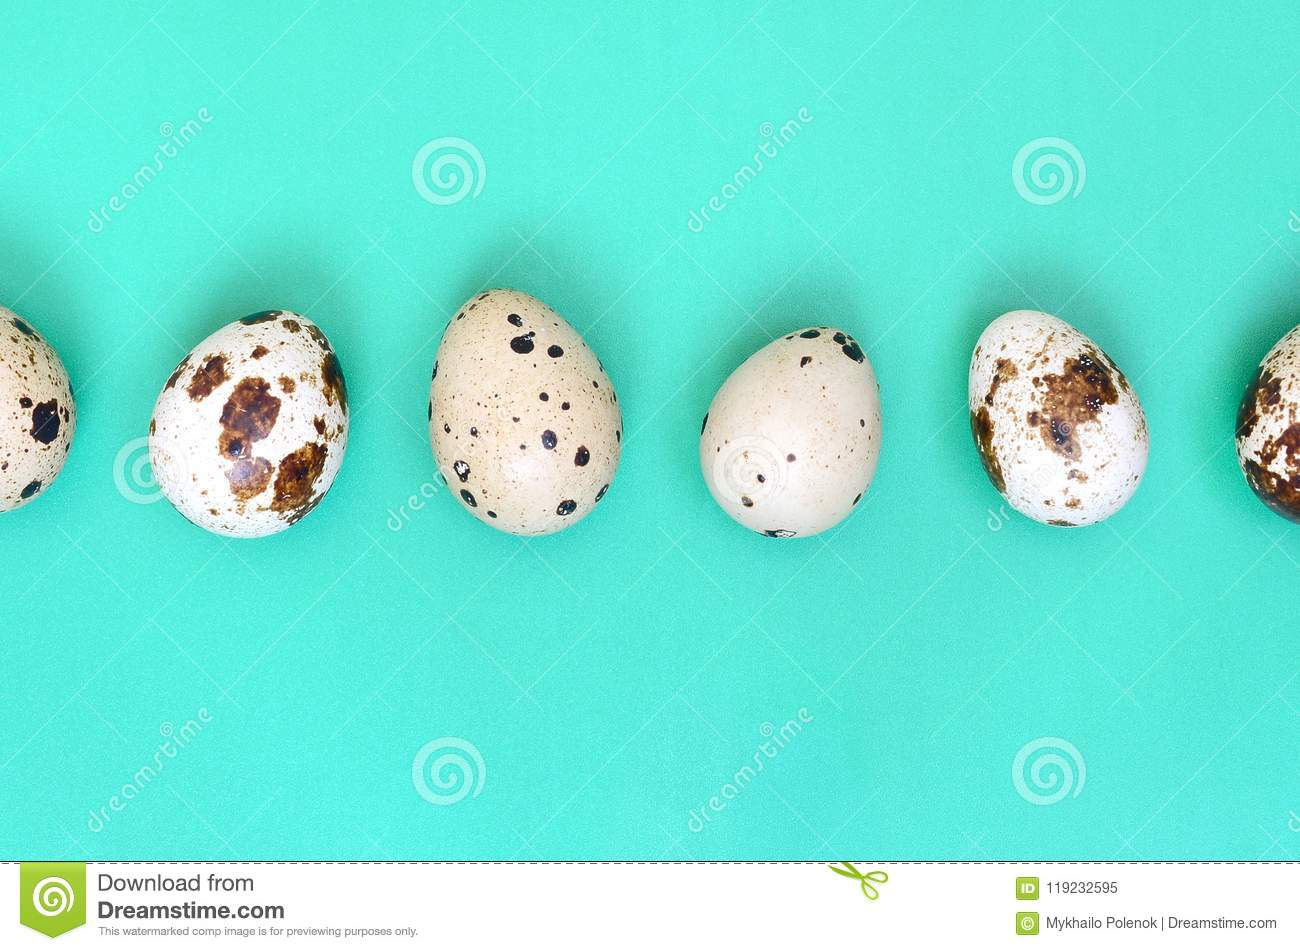 Quail eggs on a light green surface, top view, empty place for t